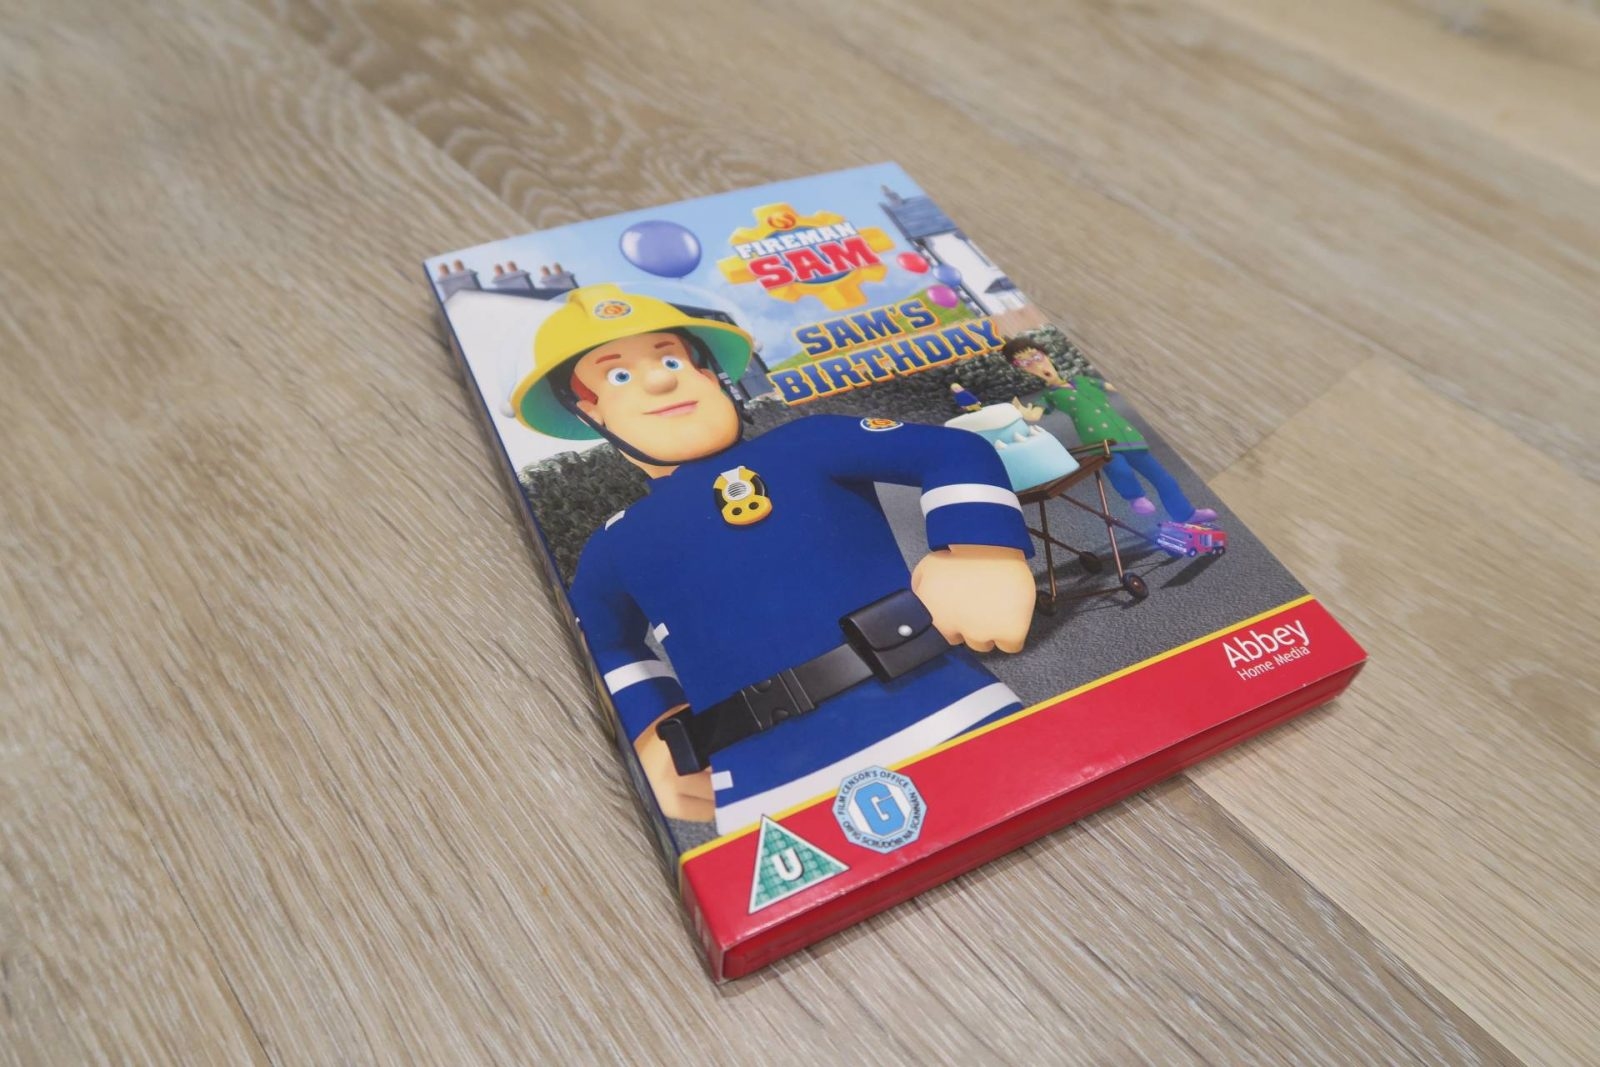 Fireman Sam DVD…Review